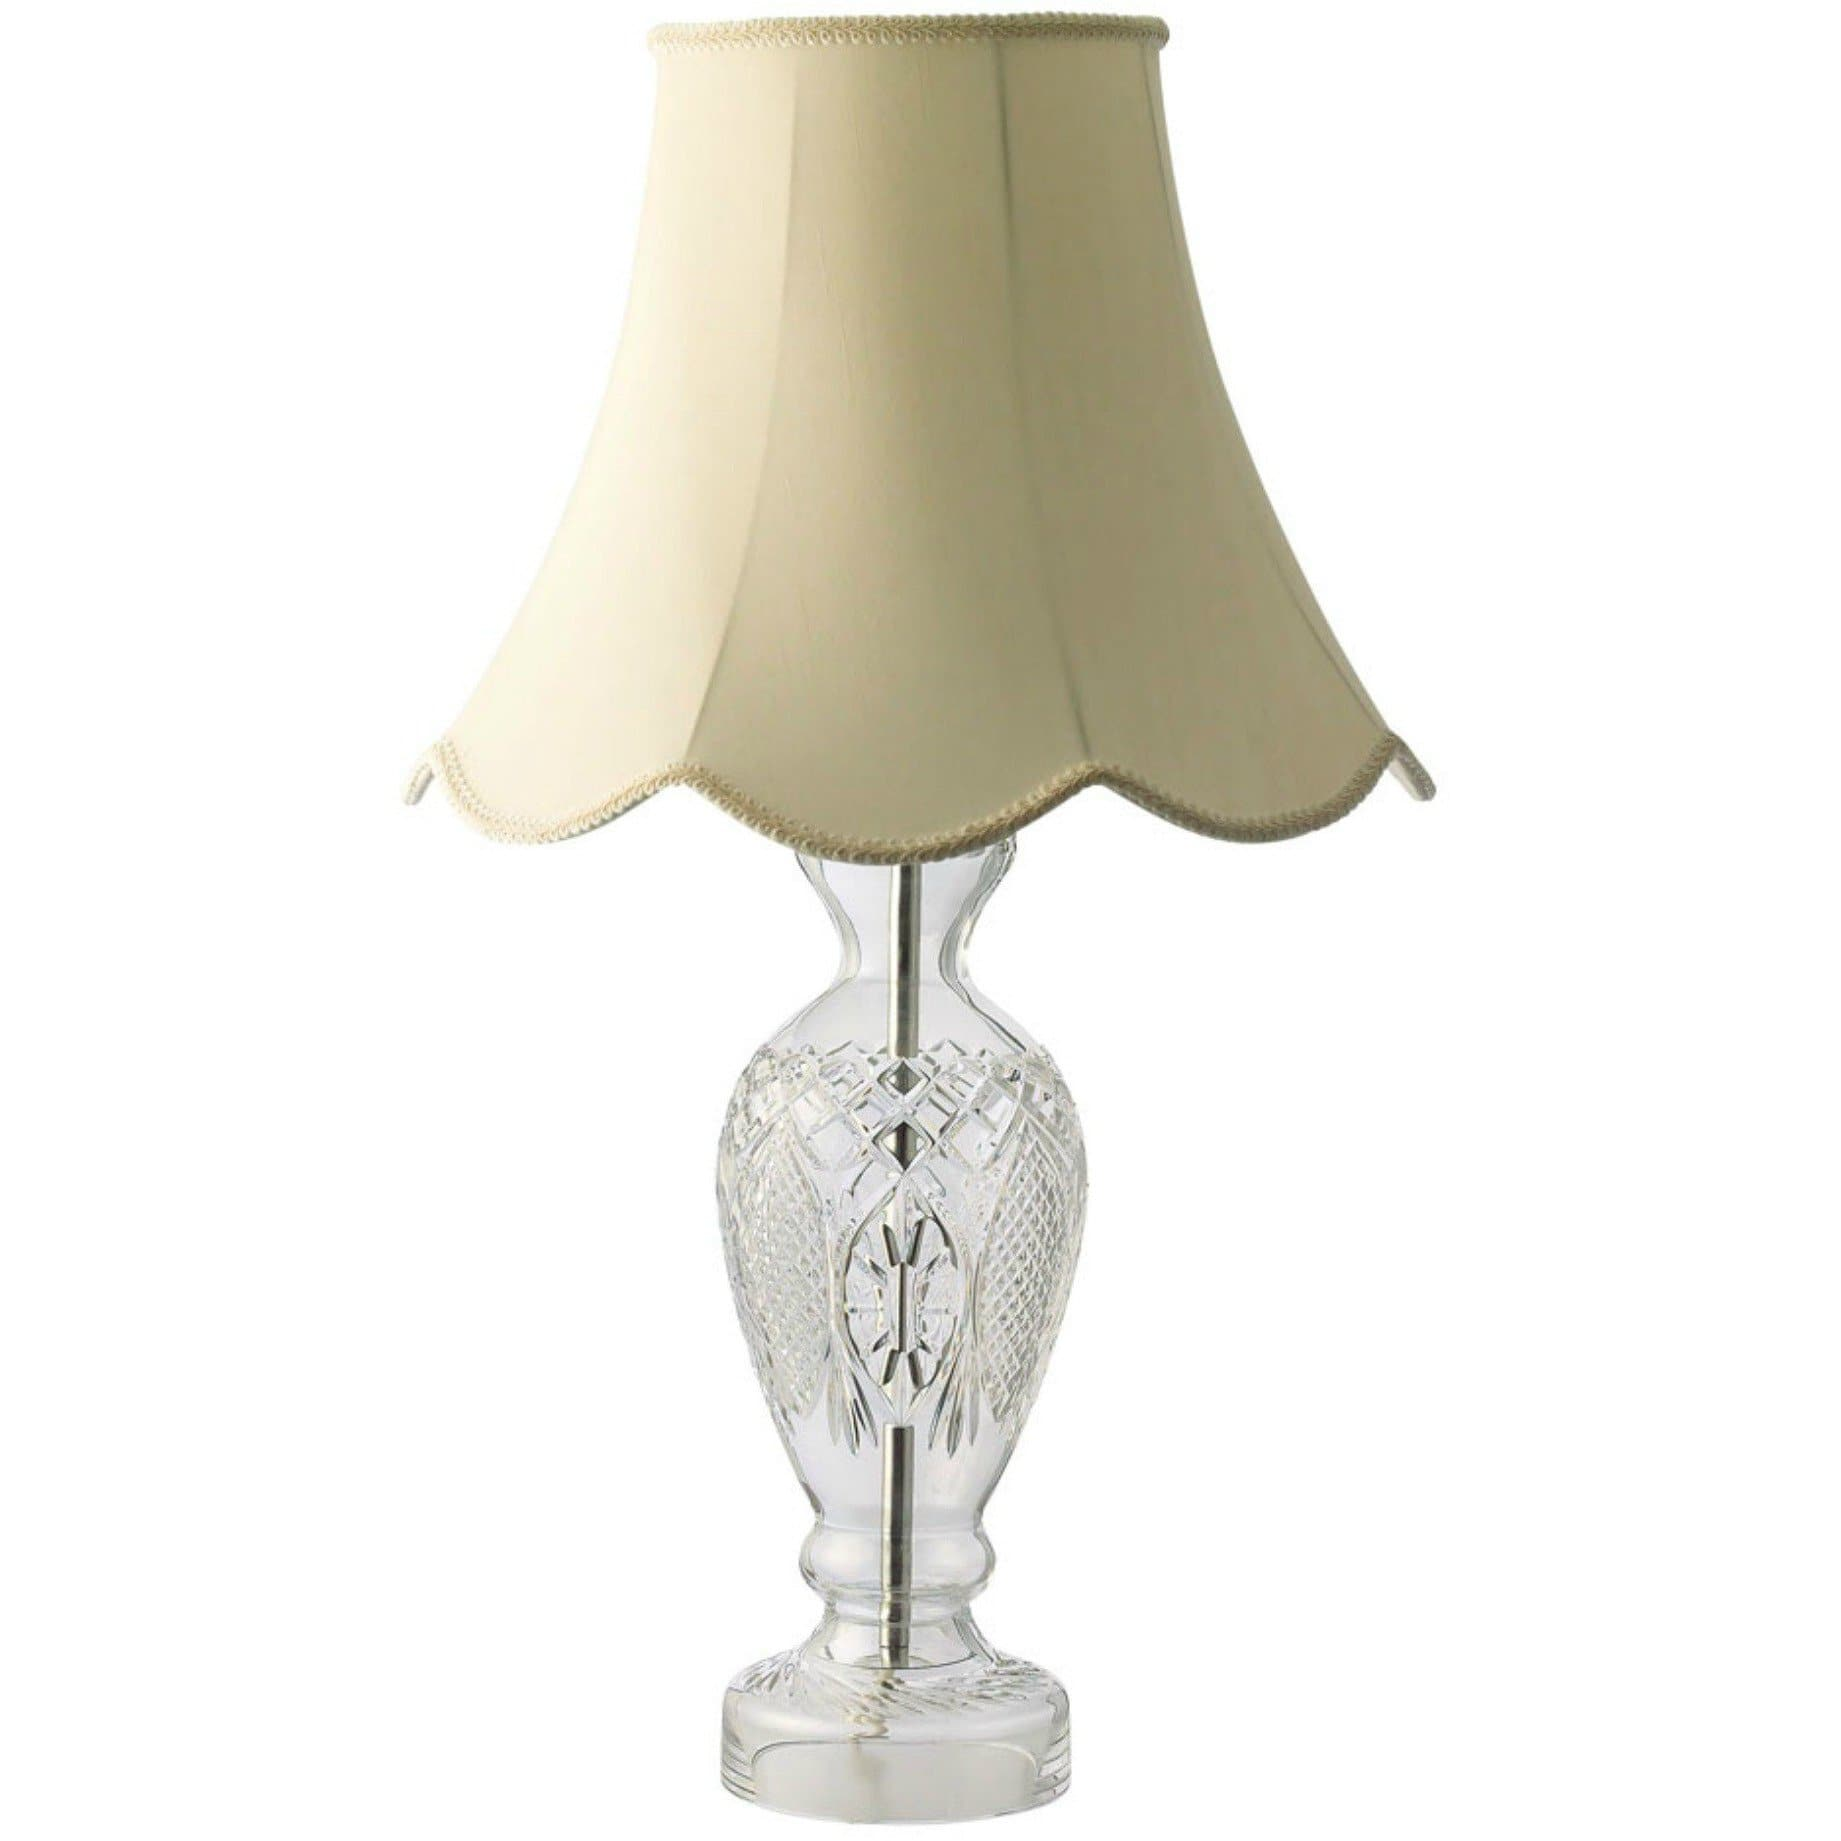 "Corrib 15"" Lamp & Shade IRL/UK Fittings - Galway Irish Crystal"